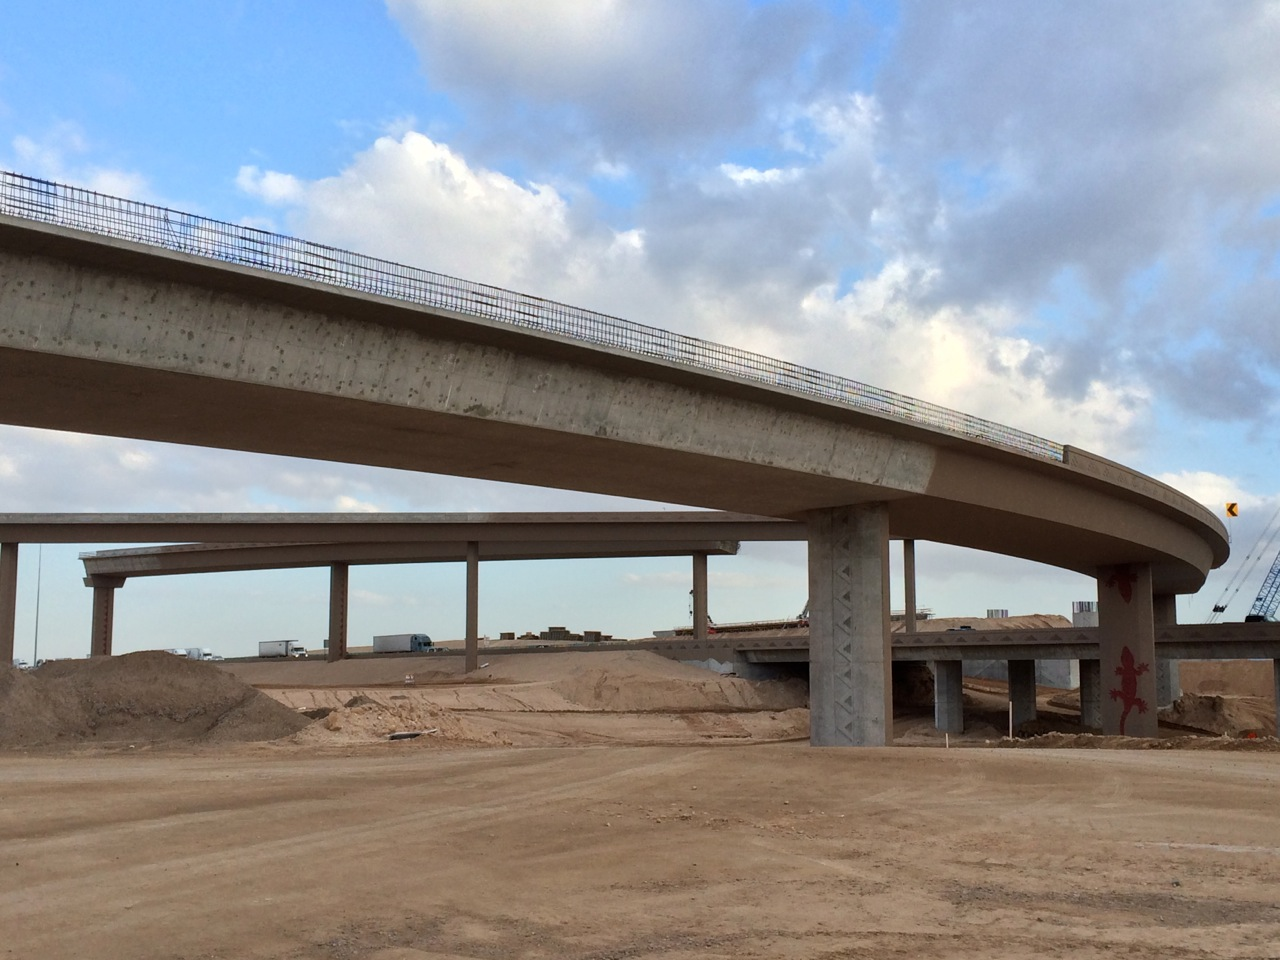 View of Loop 303 & I-10 Ramps under construction